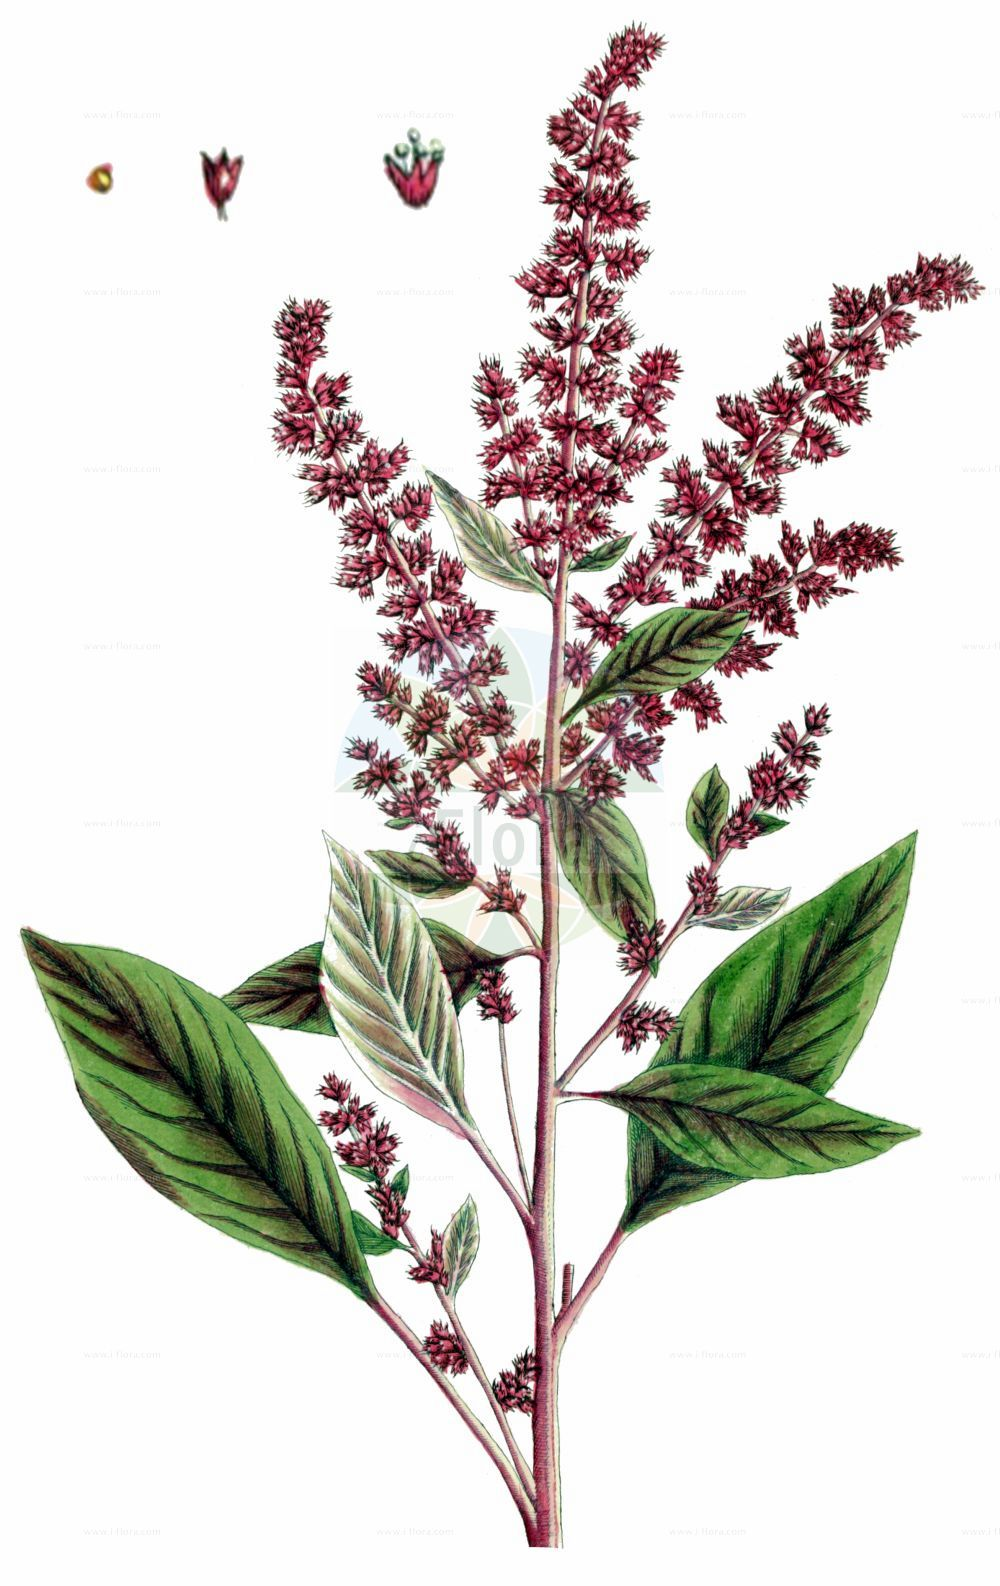 Historische Abbildung von Amaranthus hypochondriacus. Das Bild zeigt Blatt, Bluete, Frucht und Same. ---- Historical Drawing of Amaranthus hypochondriacus.The image is showing leaf, flower, fruit and seed.(Amaranthus hypochondriacus,Amaranthus hypochondriacus,Amaranthus,Fuchsschwanz,Pigweed,Amaranthaceae,Fuchsschwanzgewaechse,Pigweed family,Blatt,Bluete,Frucht,Same,leaf,flower,fruit,seed,Blackwell (1737-1739))